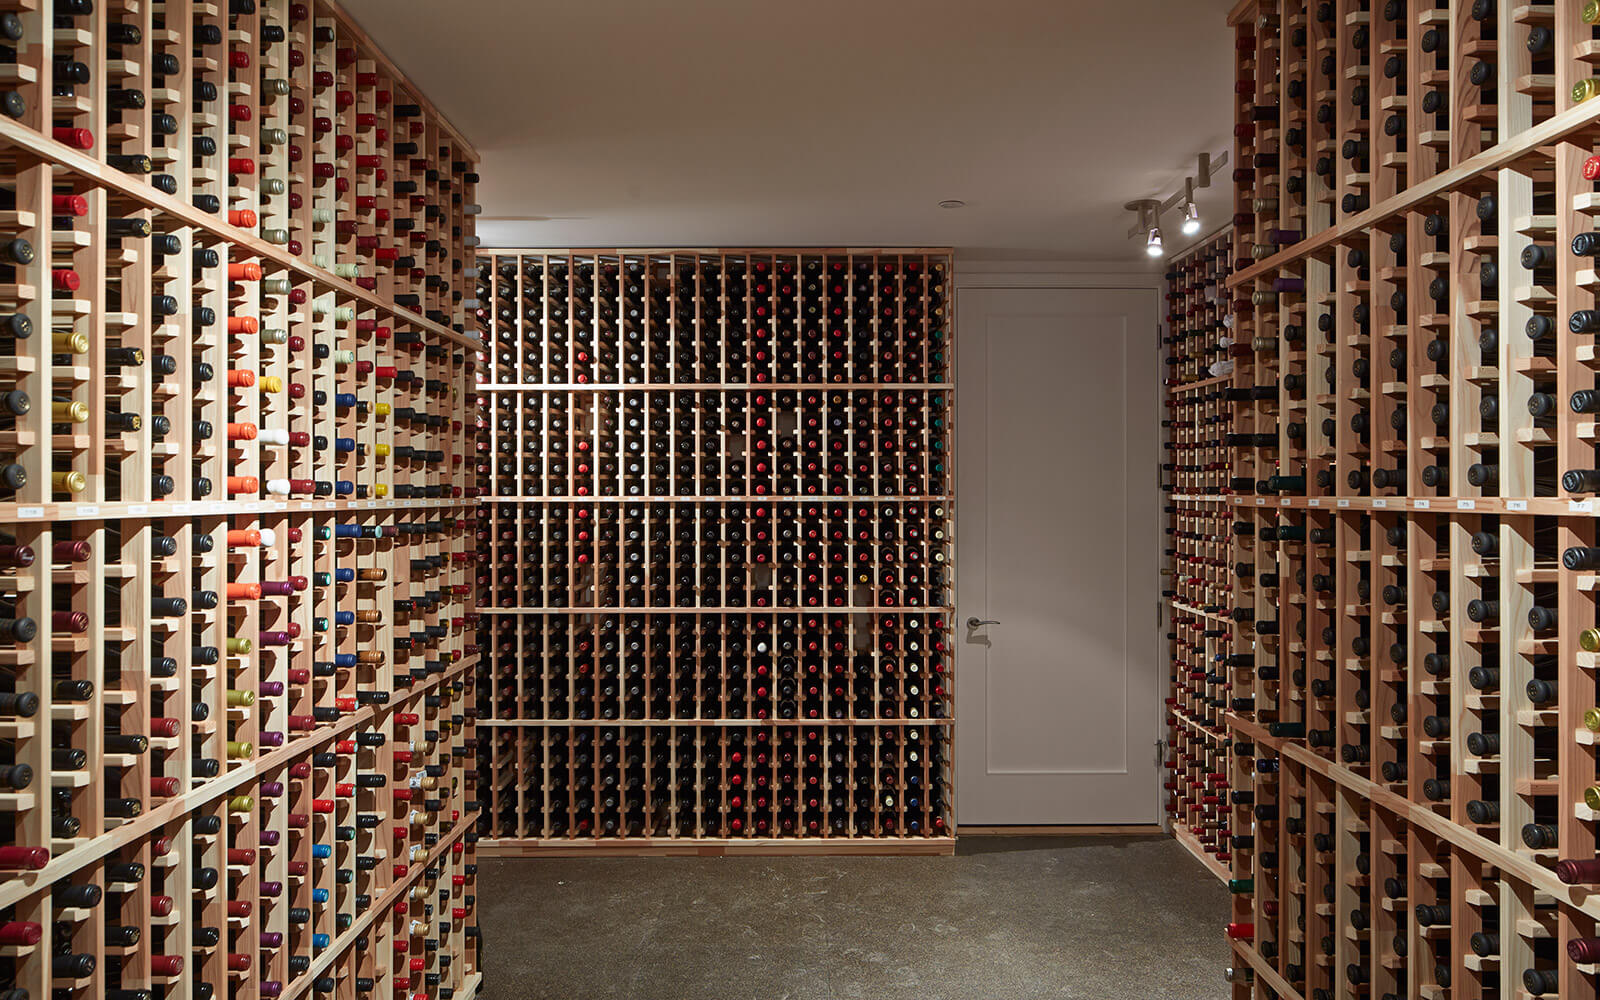 studio vara residential noe wine cellar rack